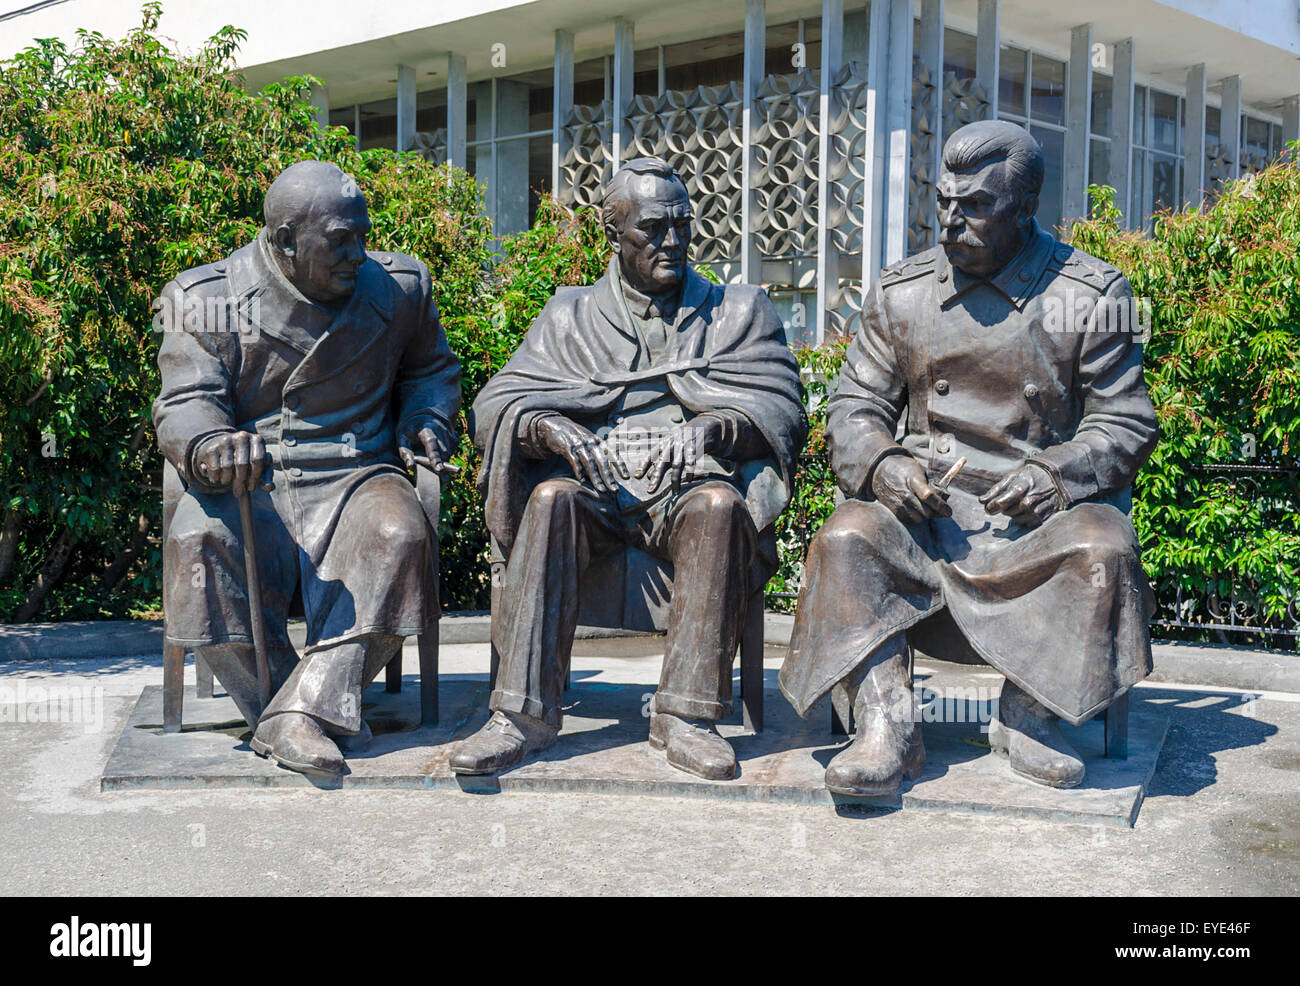 Yalta, RUSSIA - July 3: Opening of the monument in honor of the 70th anniversary of the Yalta Conference, the leaders - Stock Image